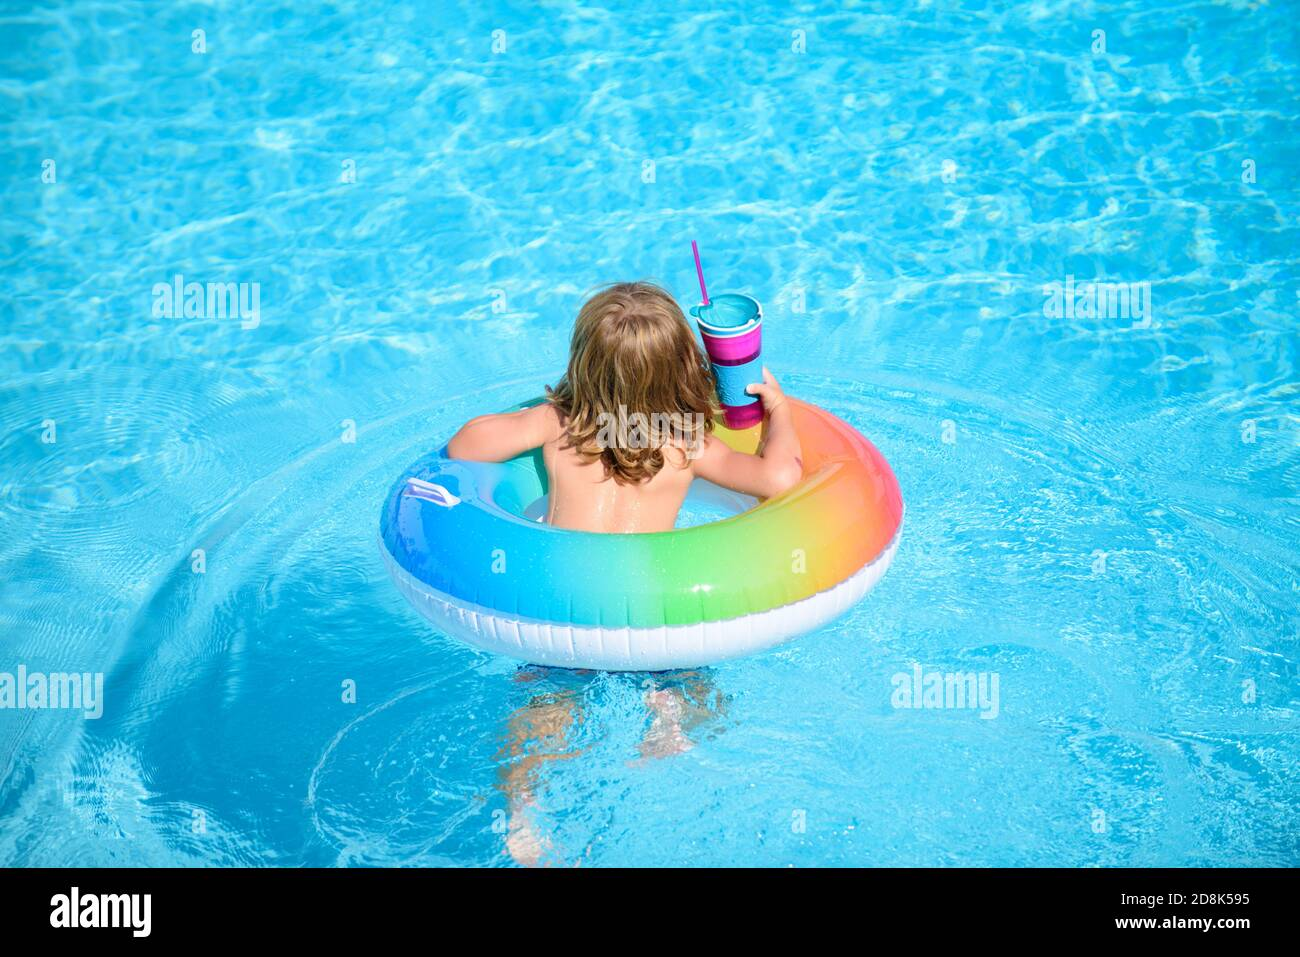 Kid with colorful swim ring in swimming pool on summer day. Water toys and floats for child. Healthy sport for children. Family beach vacation. Stock Photo